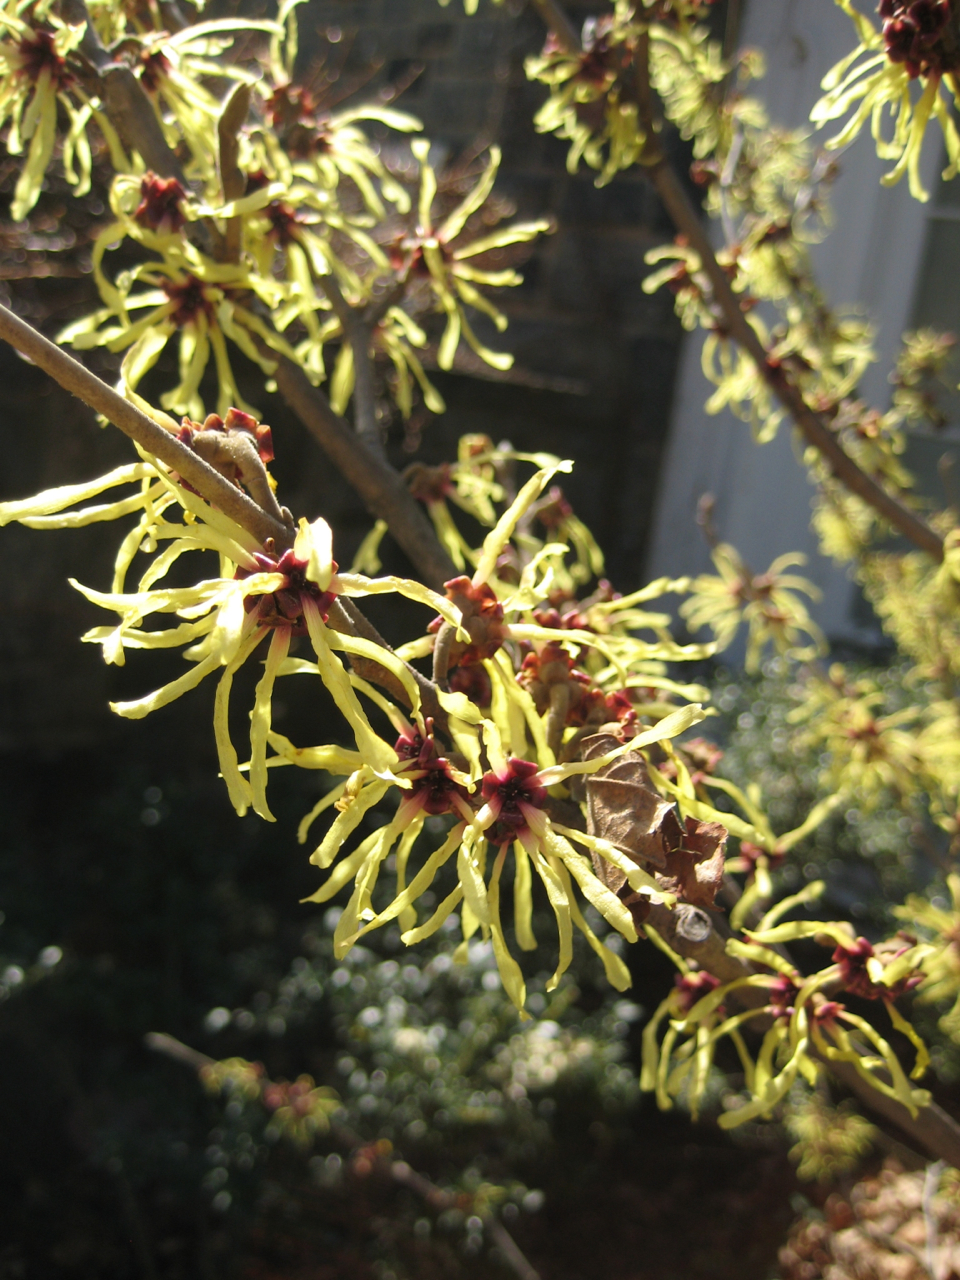 Witch hazel flowers - Bronx, NY